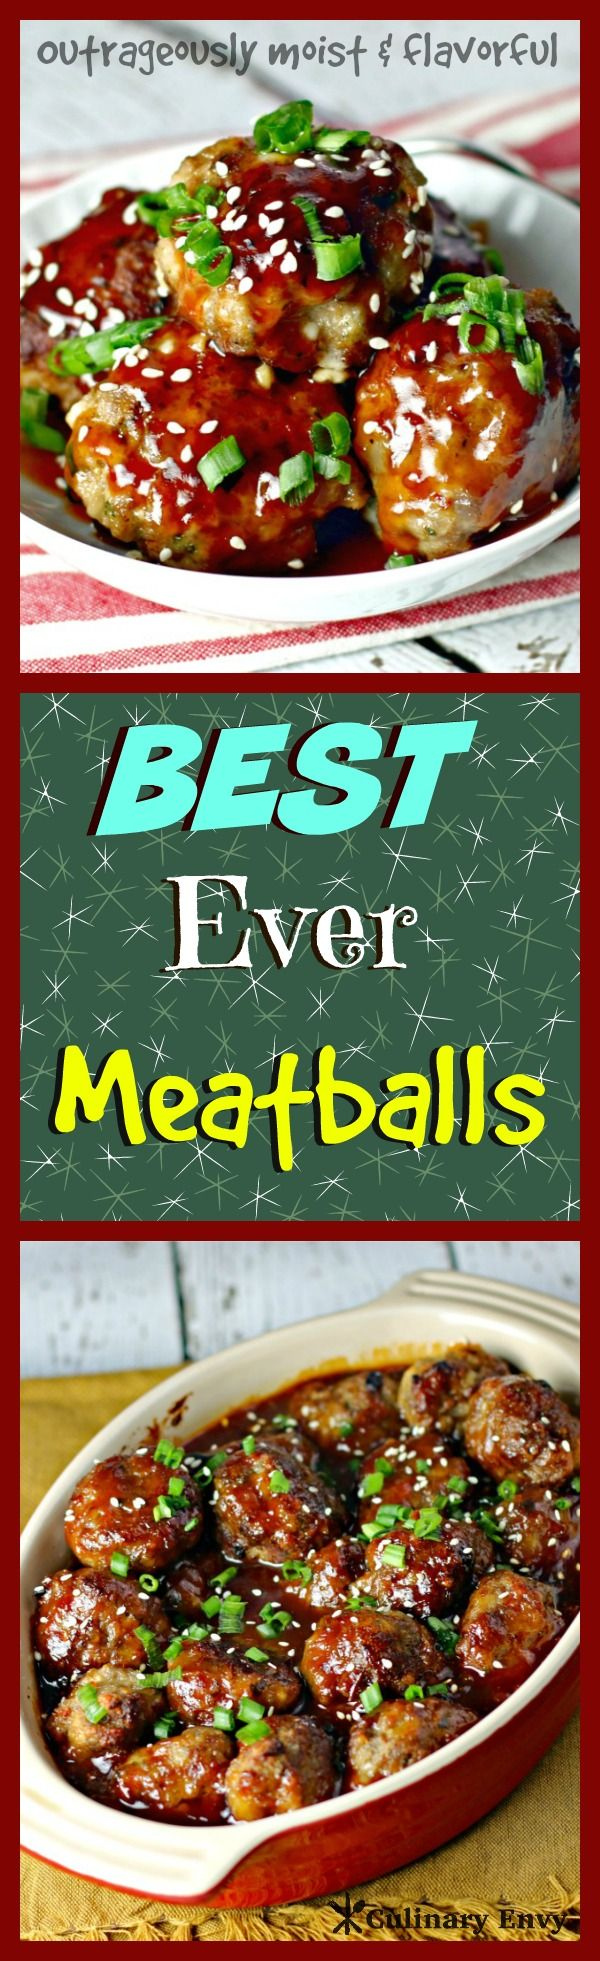 Best Ever Meatballs are juicy, tender, and moist with outrageously fresh, flavorful ingredients. It is the ultimate savory, sweet and tangy combination. The perfect addition to any game day or holiday party!